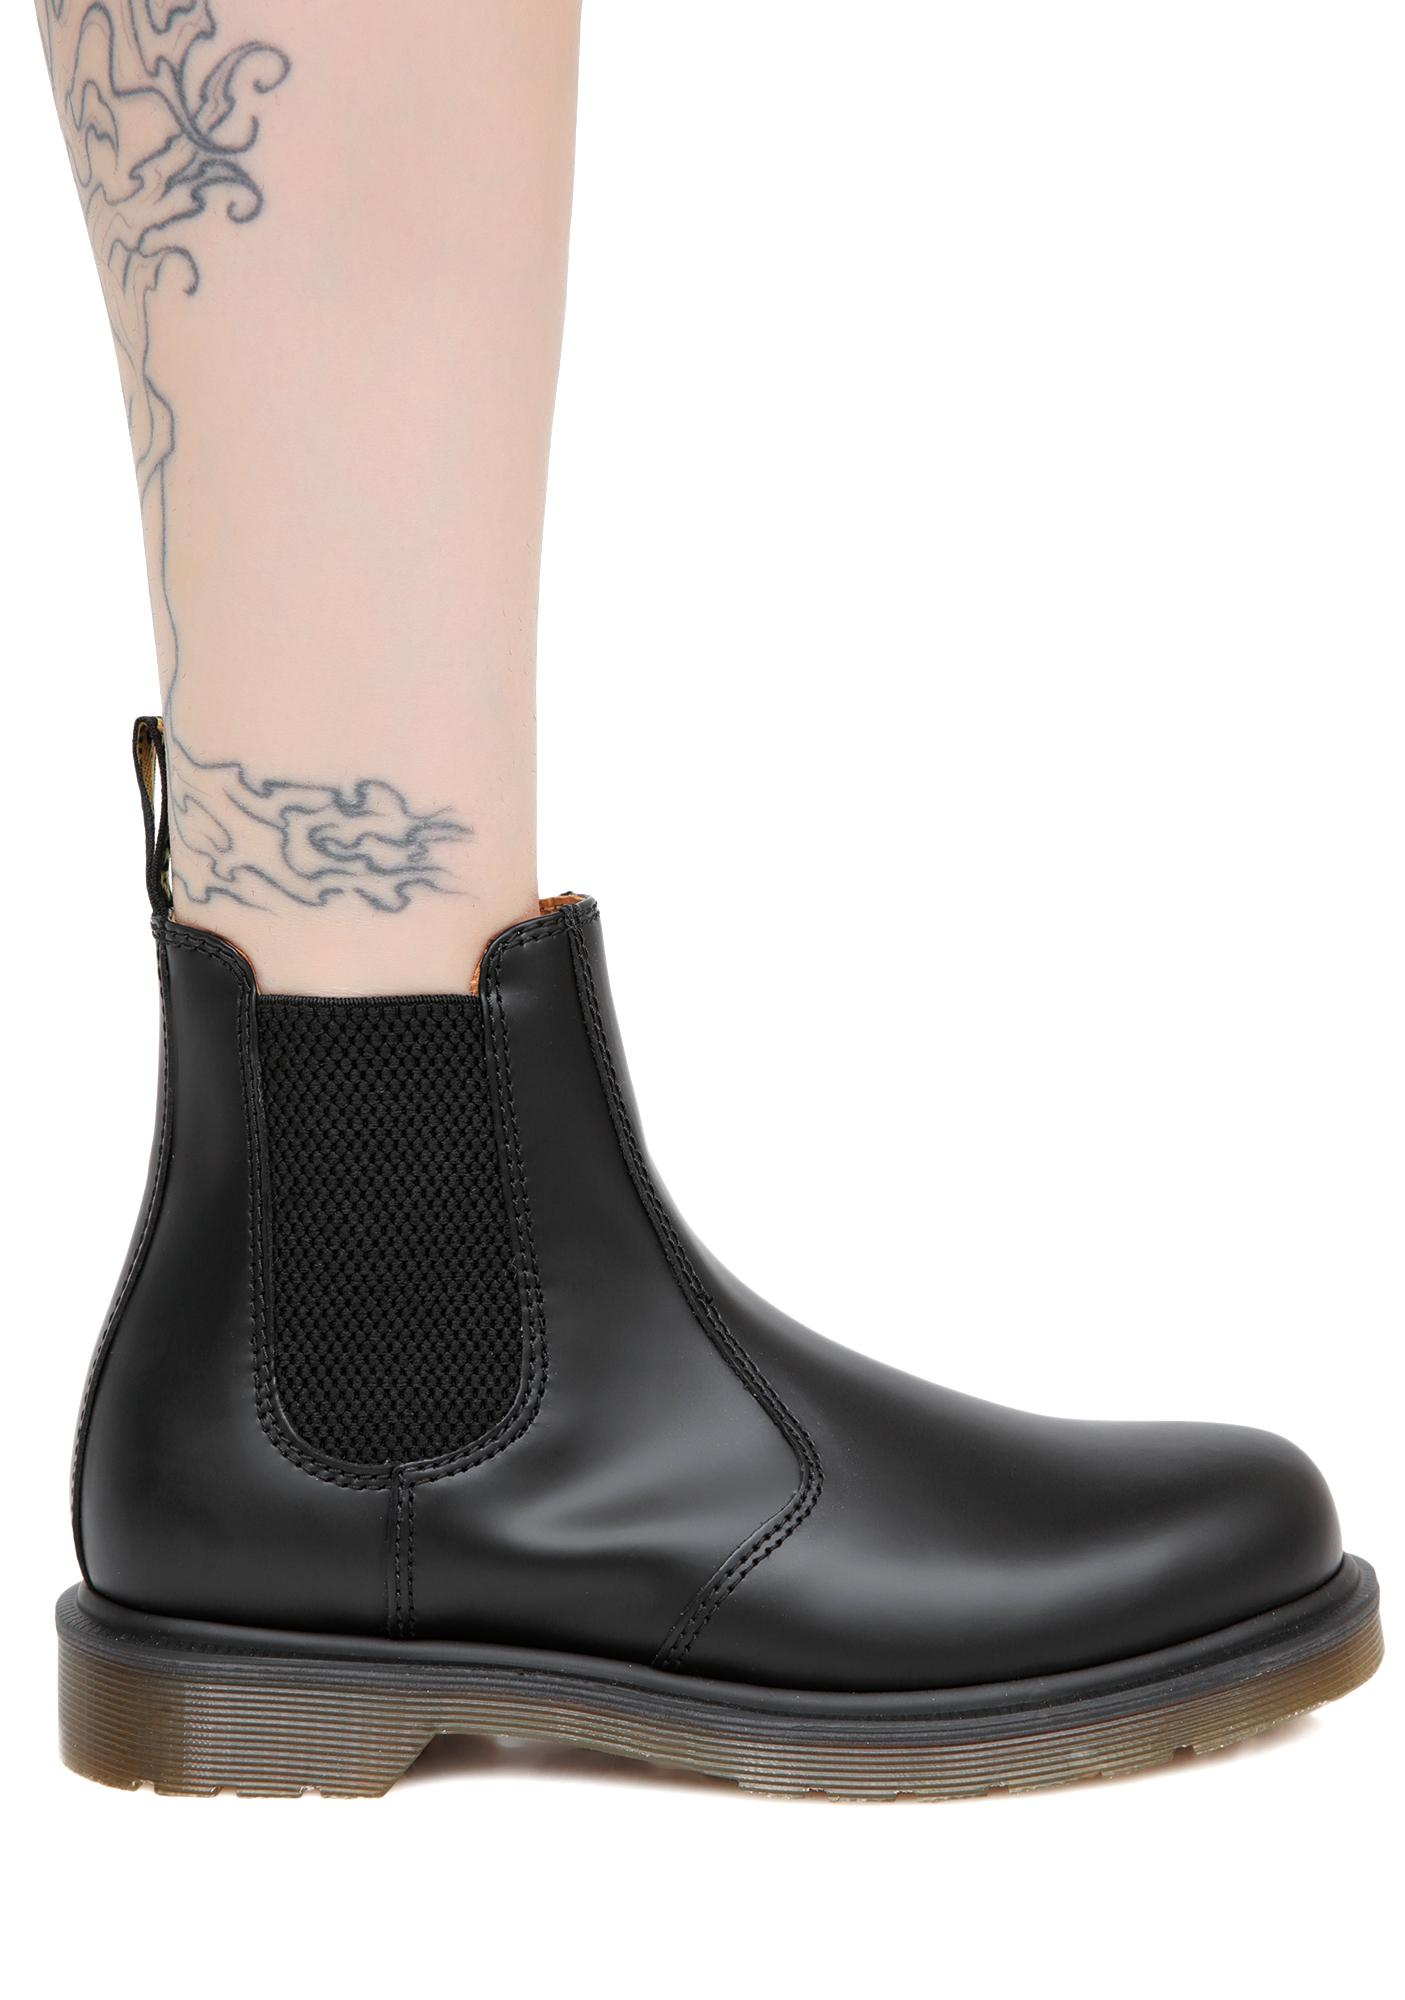 Dr. Martens Black 2976 8 Eye Yellow Stitch Boots